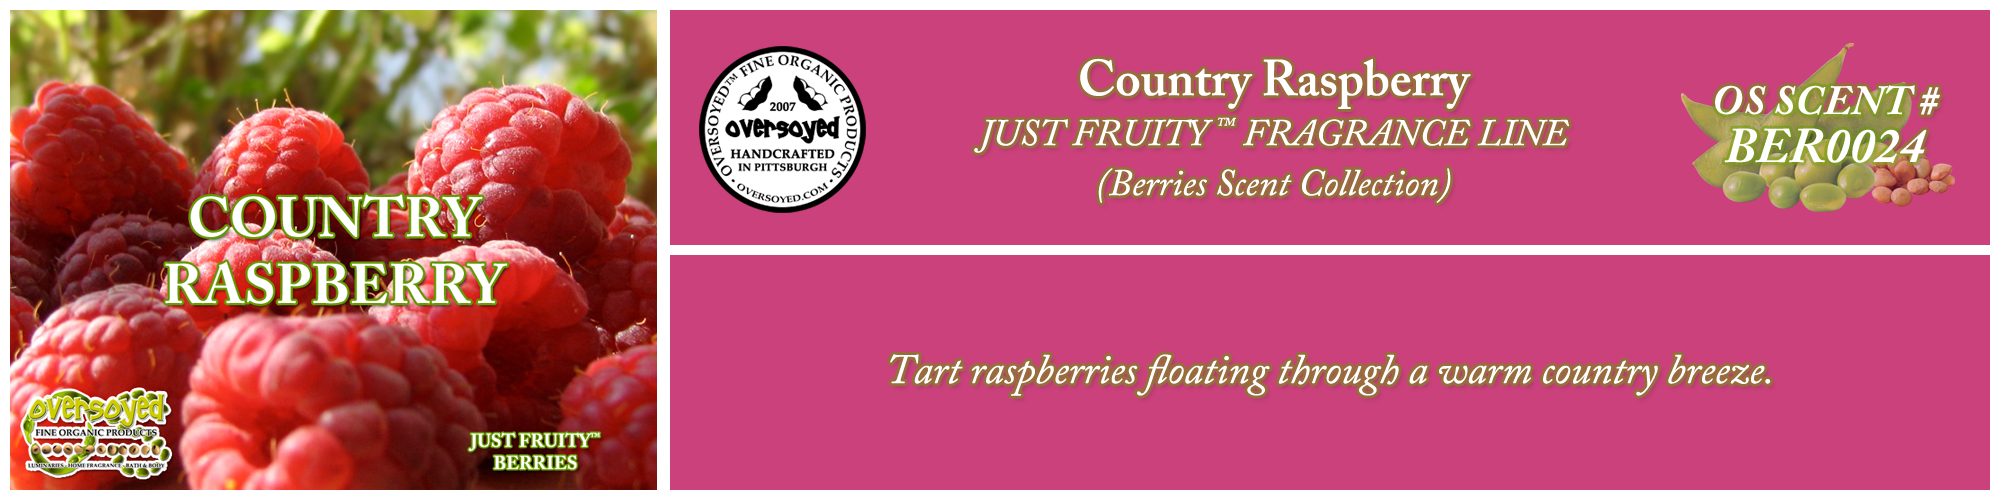 Country Raspberry Handcrafted Products Collection